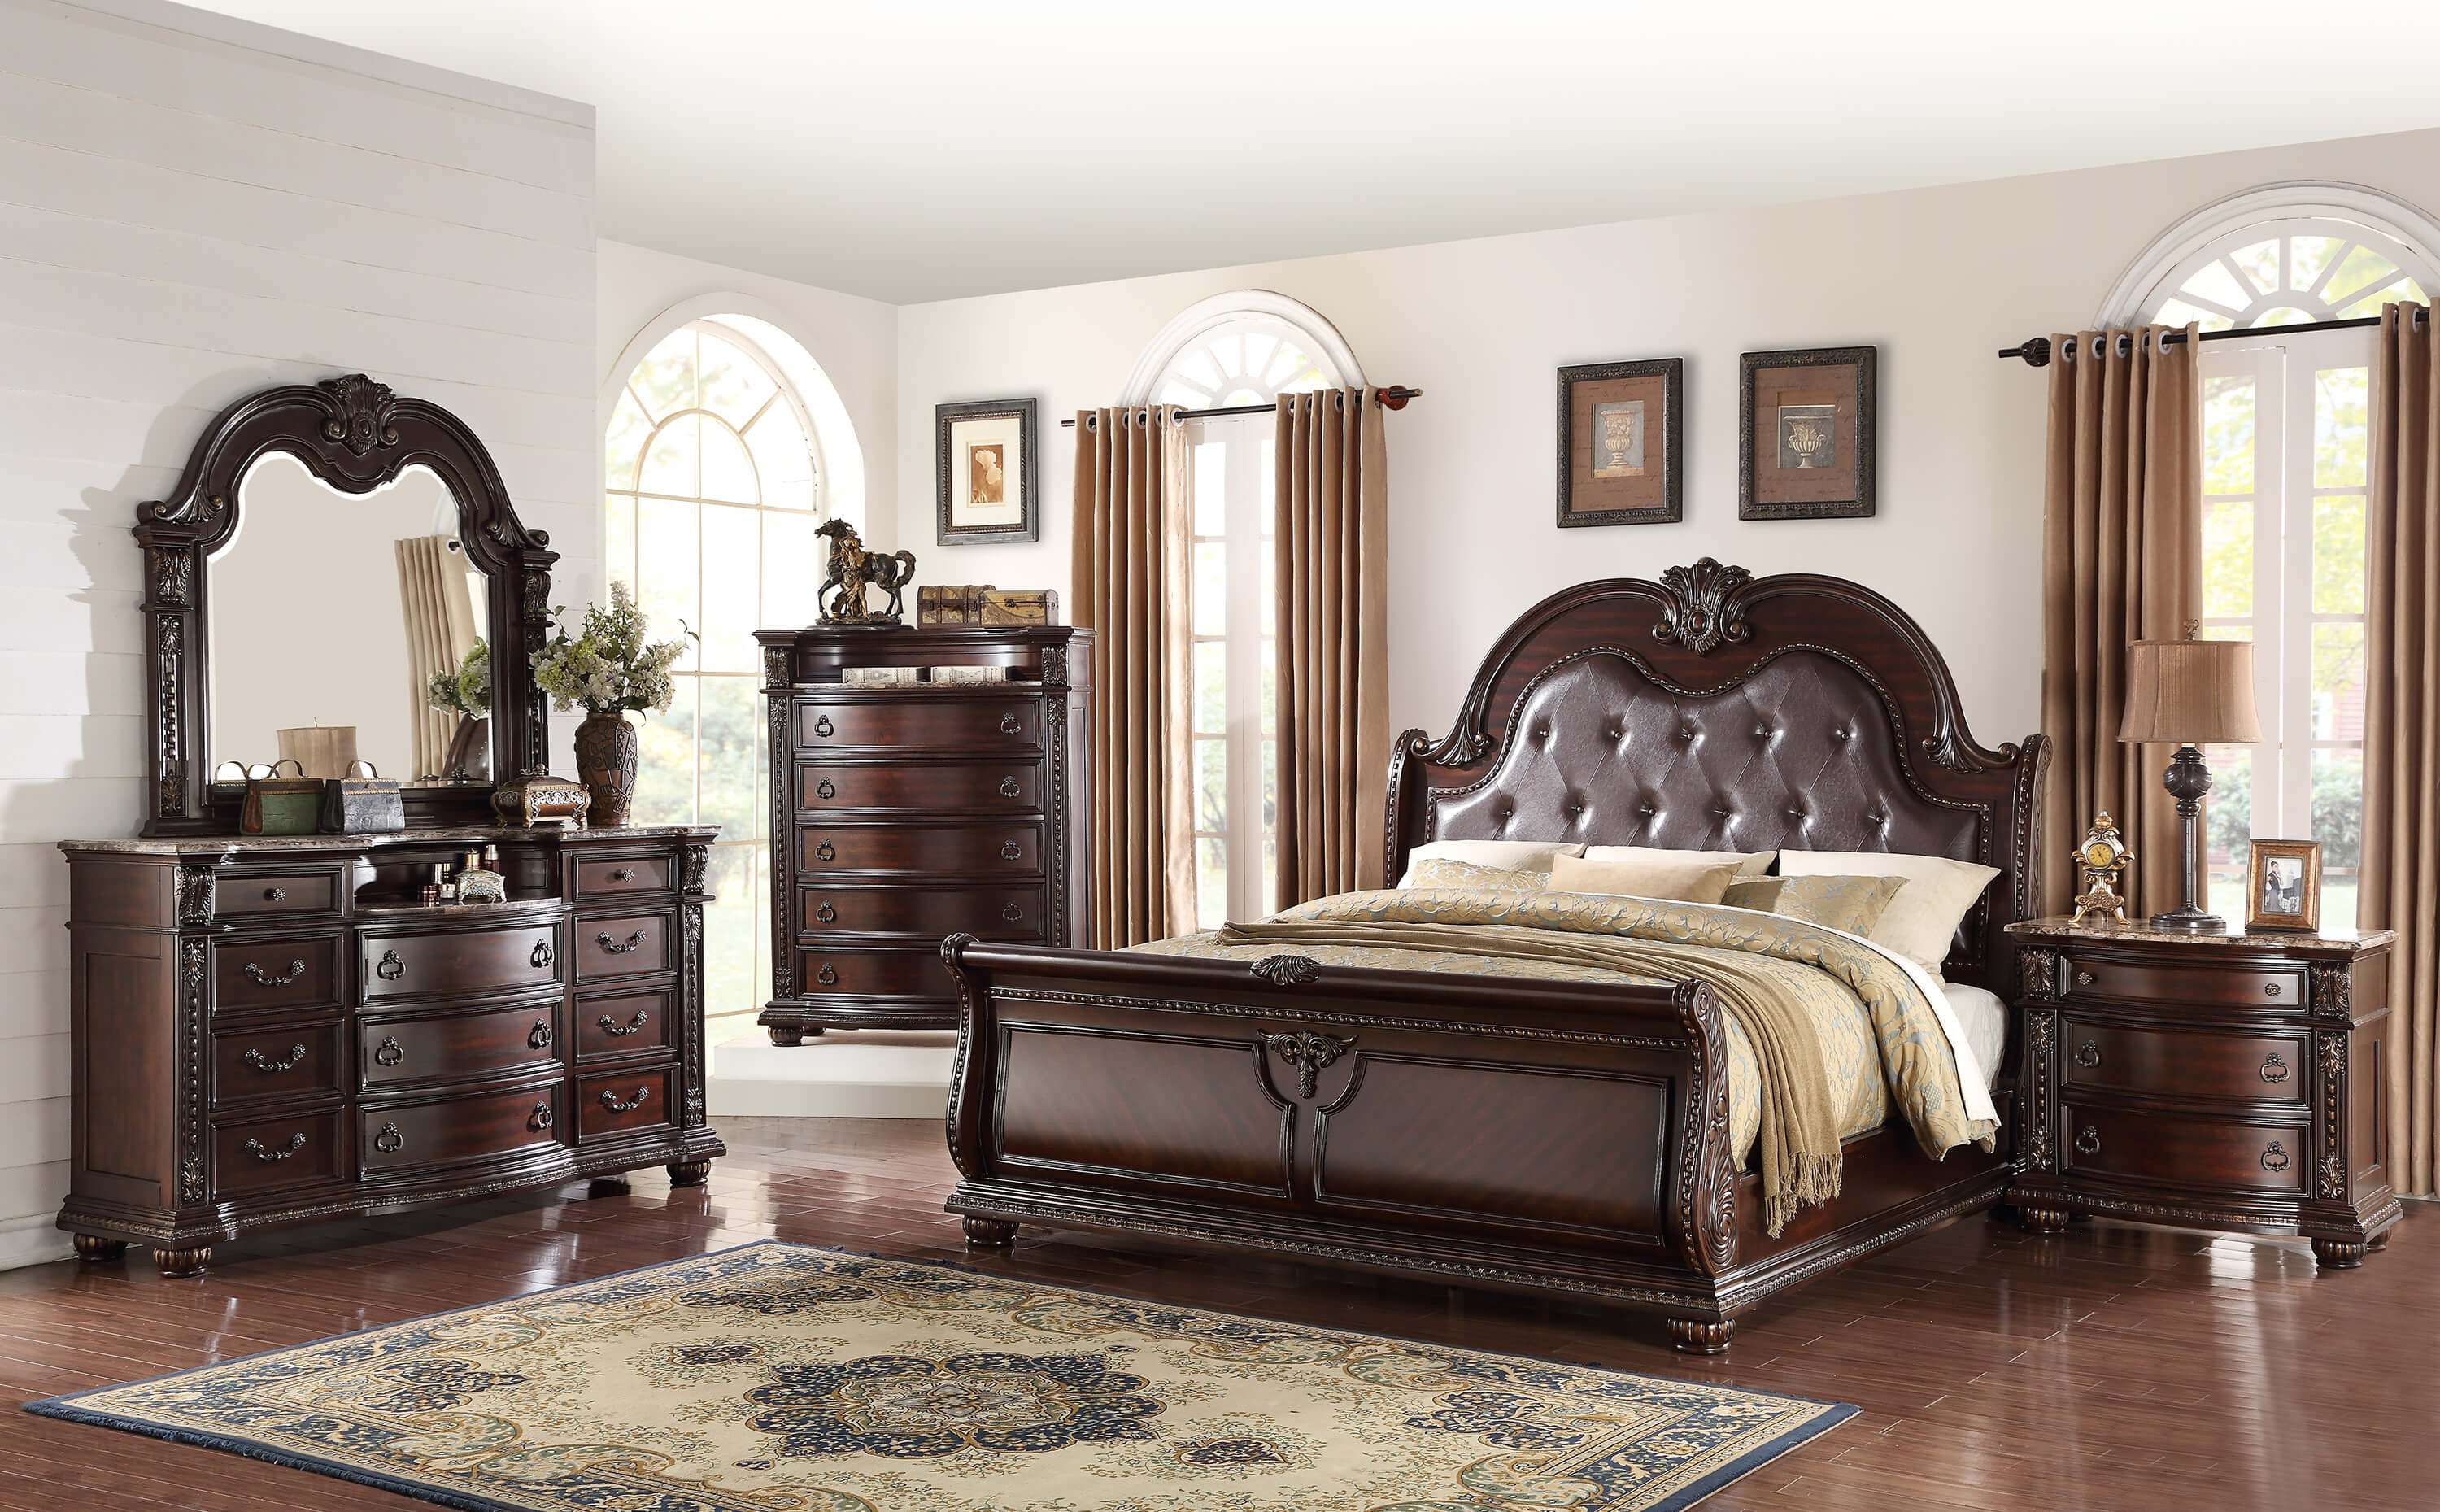 windsor item collections bup group number standard silver wayside queen bed q bedroom furniture sets